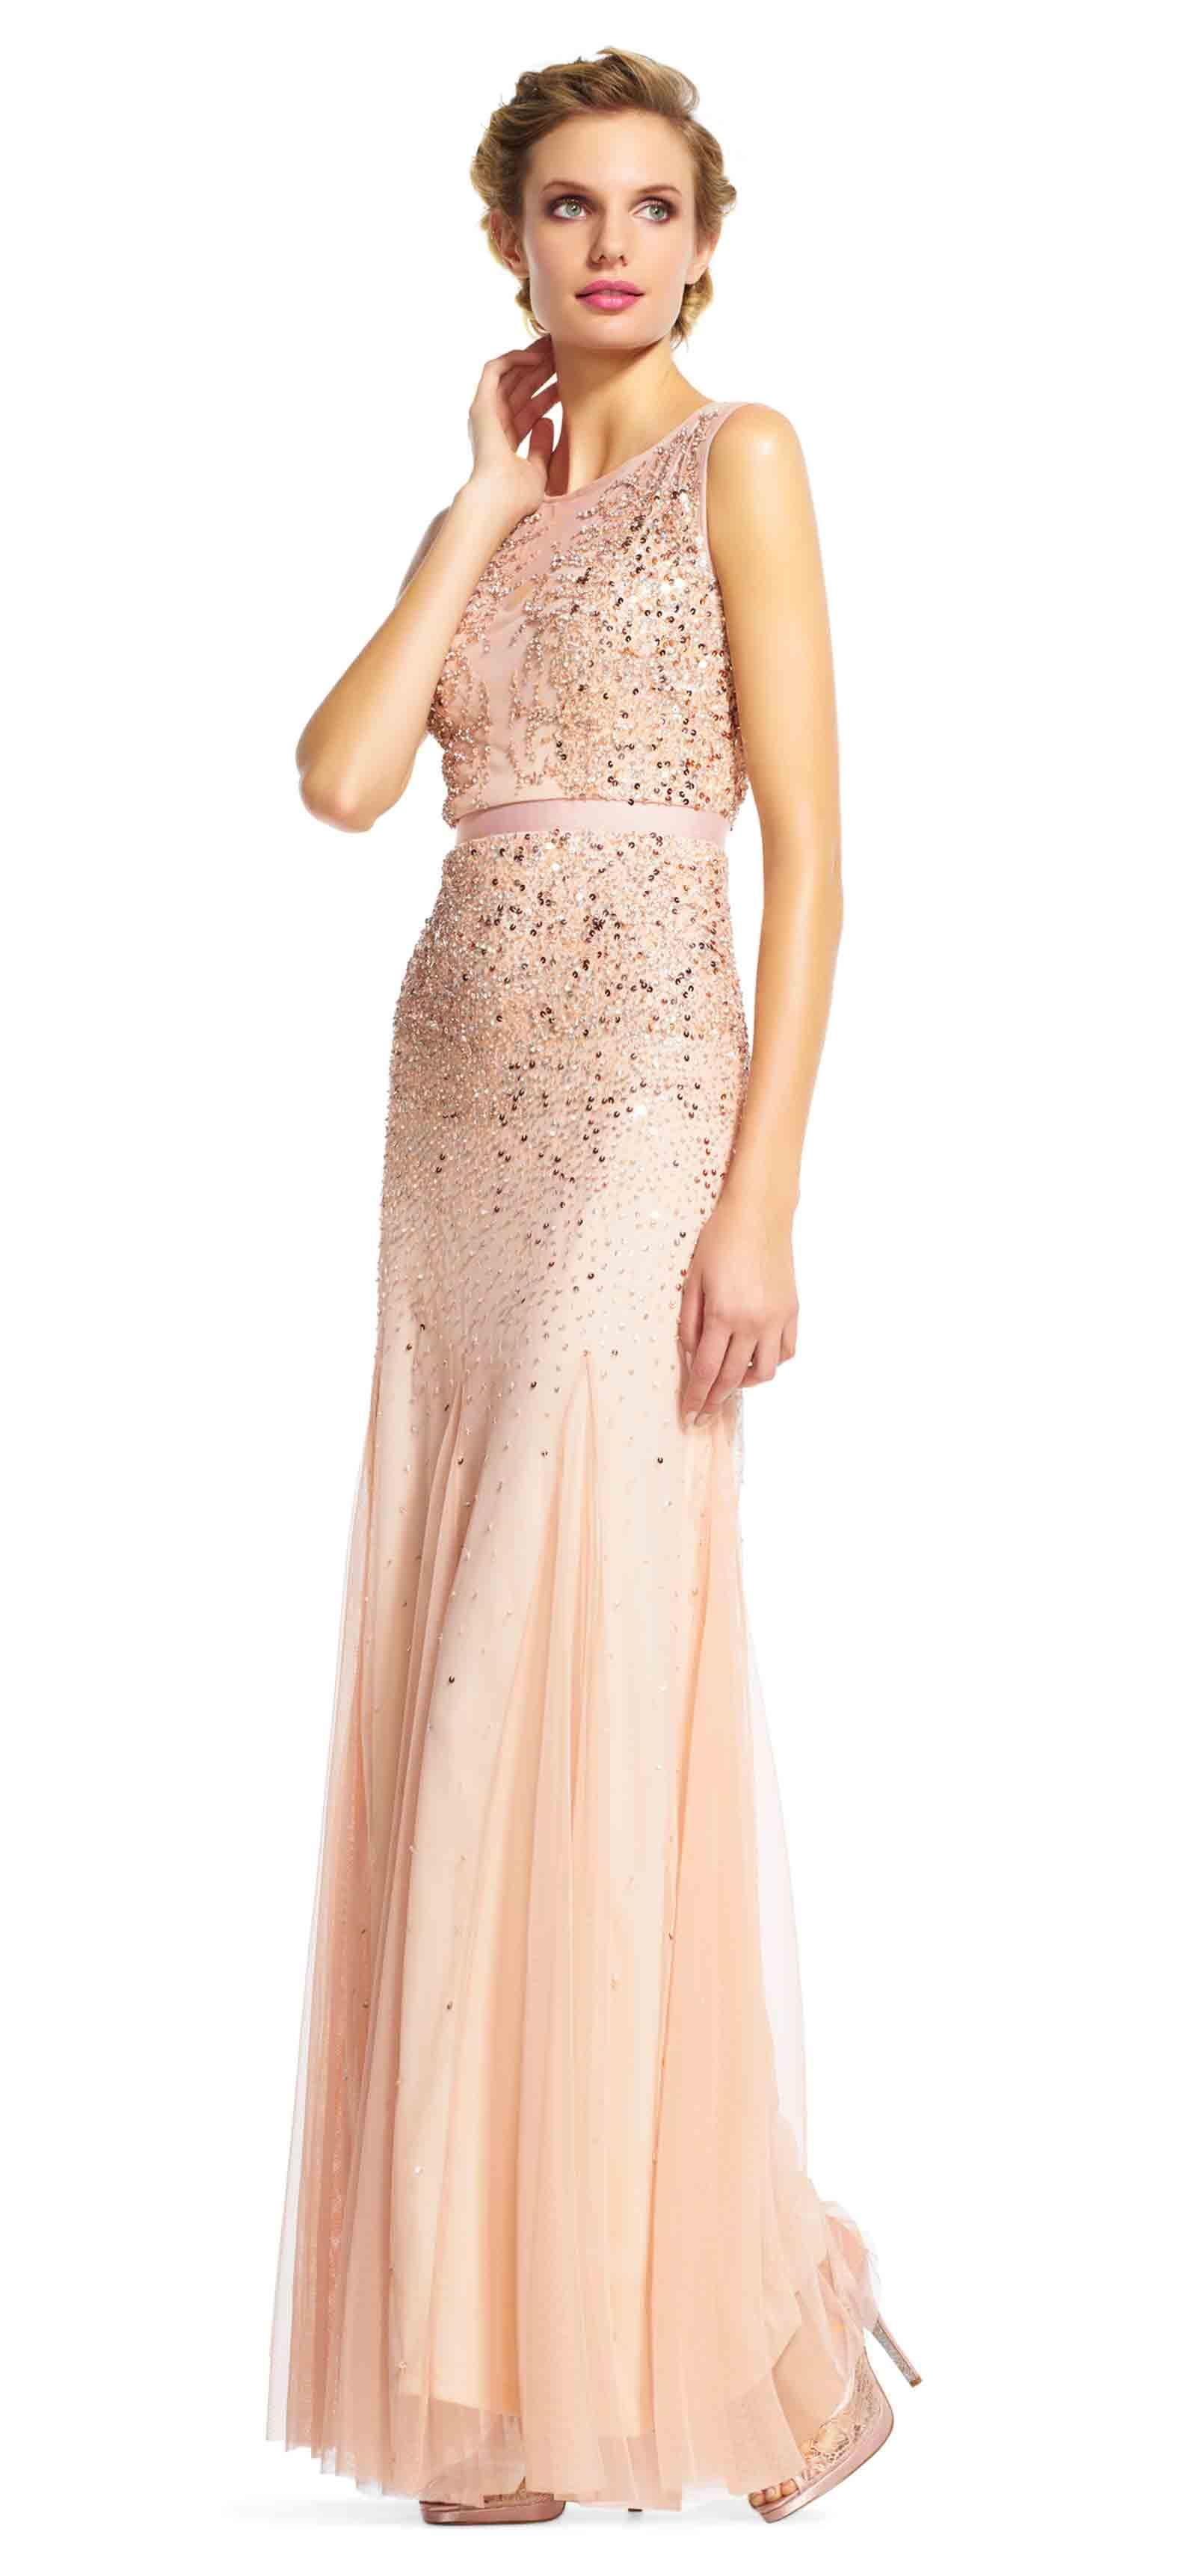 Blush Beaded Gown with Illusion Neck Formal Dress | Wedding ...